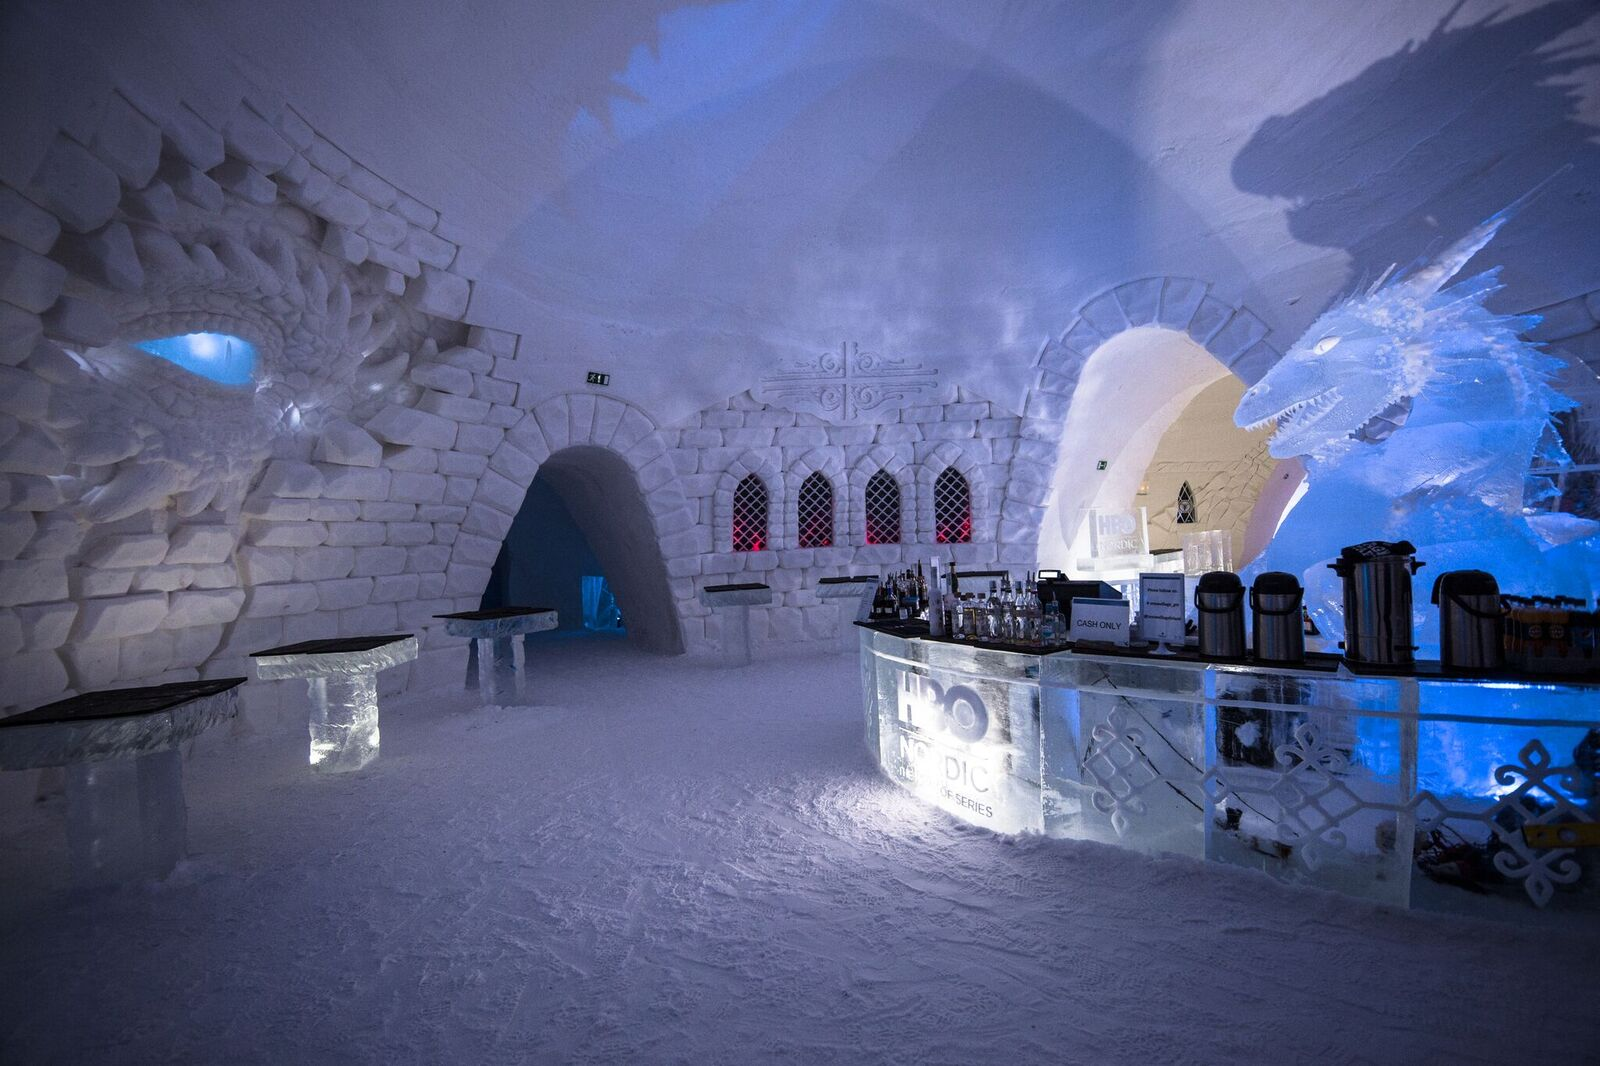 game of thrones hotel bar in finland